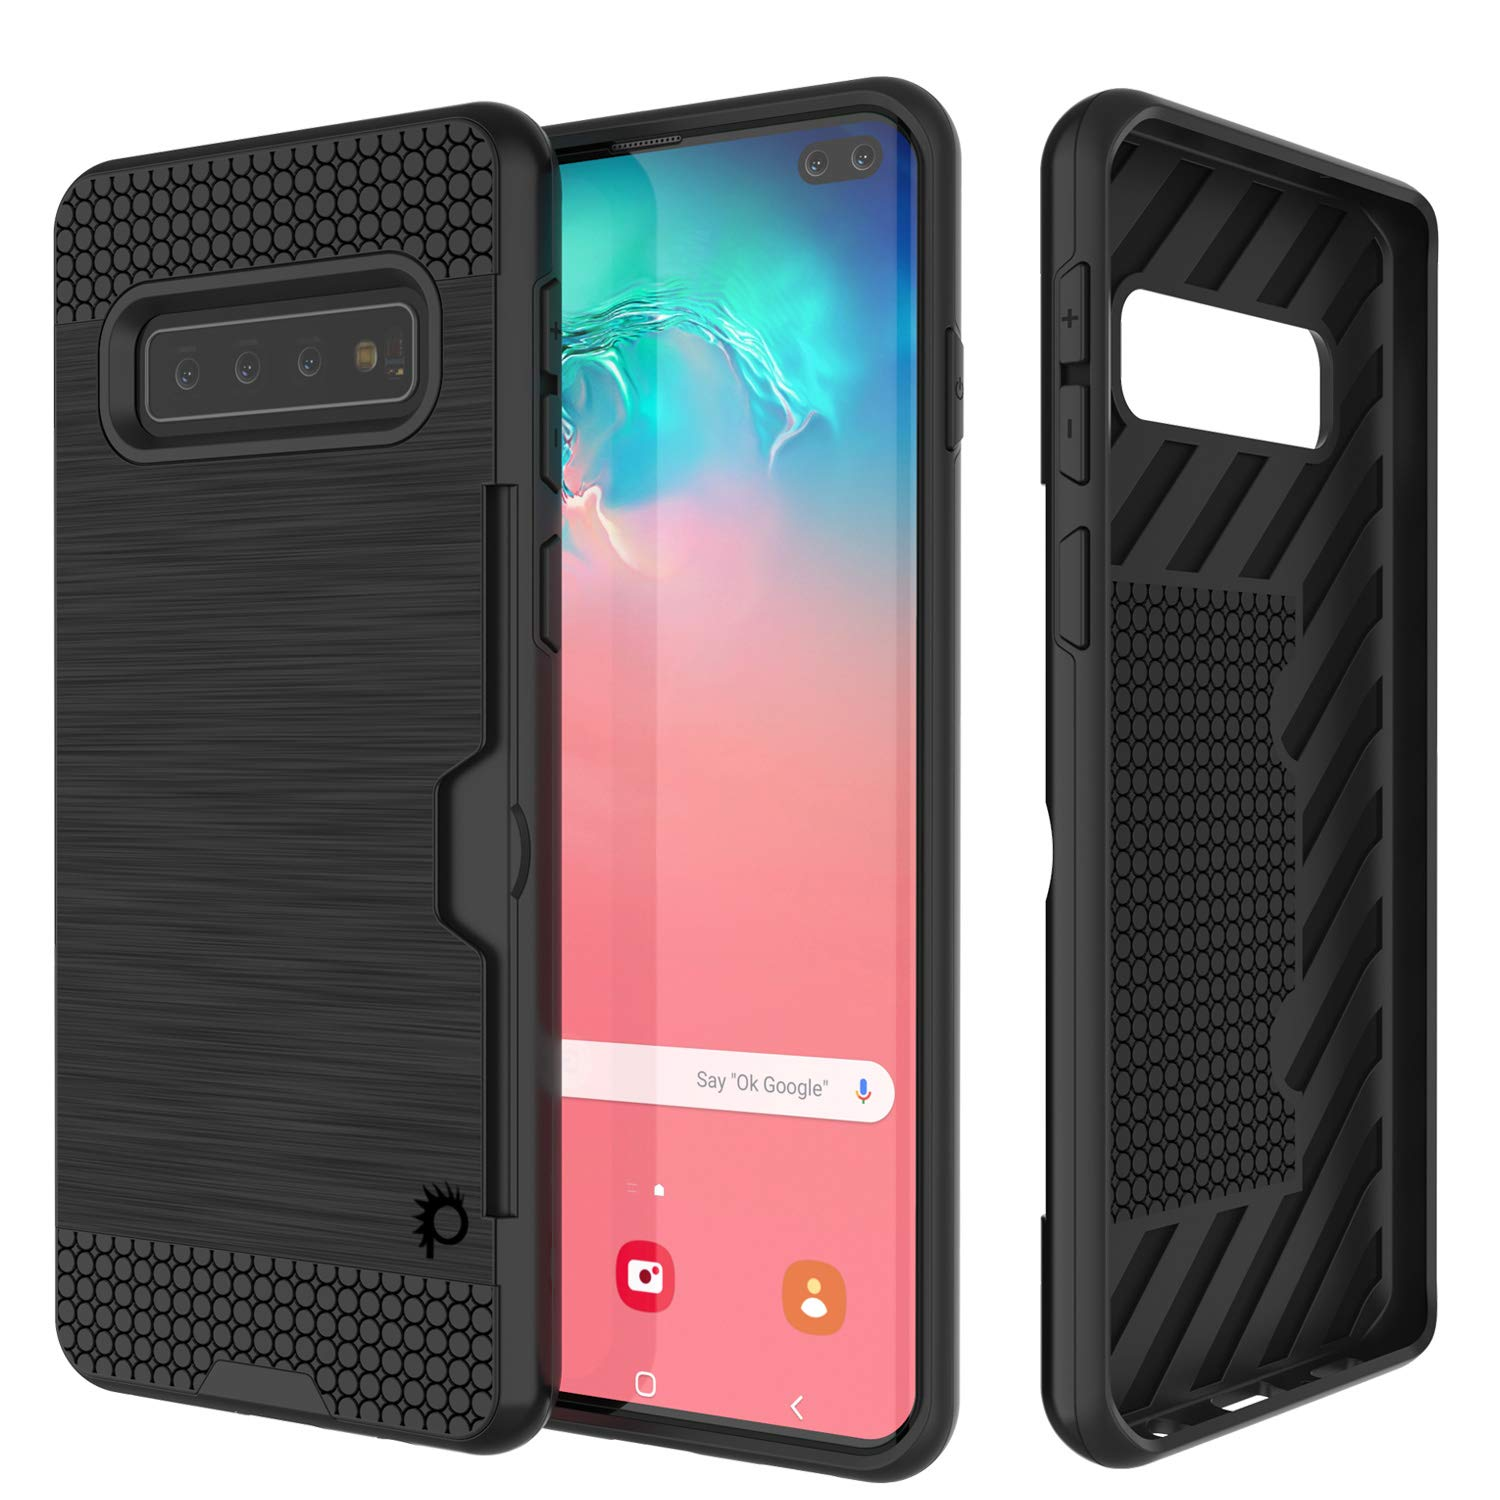 Galaxy S10 Case, PUNKcase [SLOT Series] [Slim Fit] Dual-Layer Armor Cover w/Integrated Anti-Shock System, Credit Card Slot [Black]